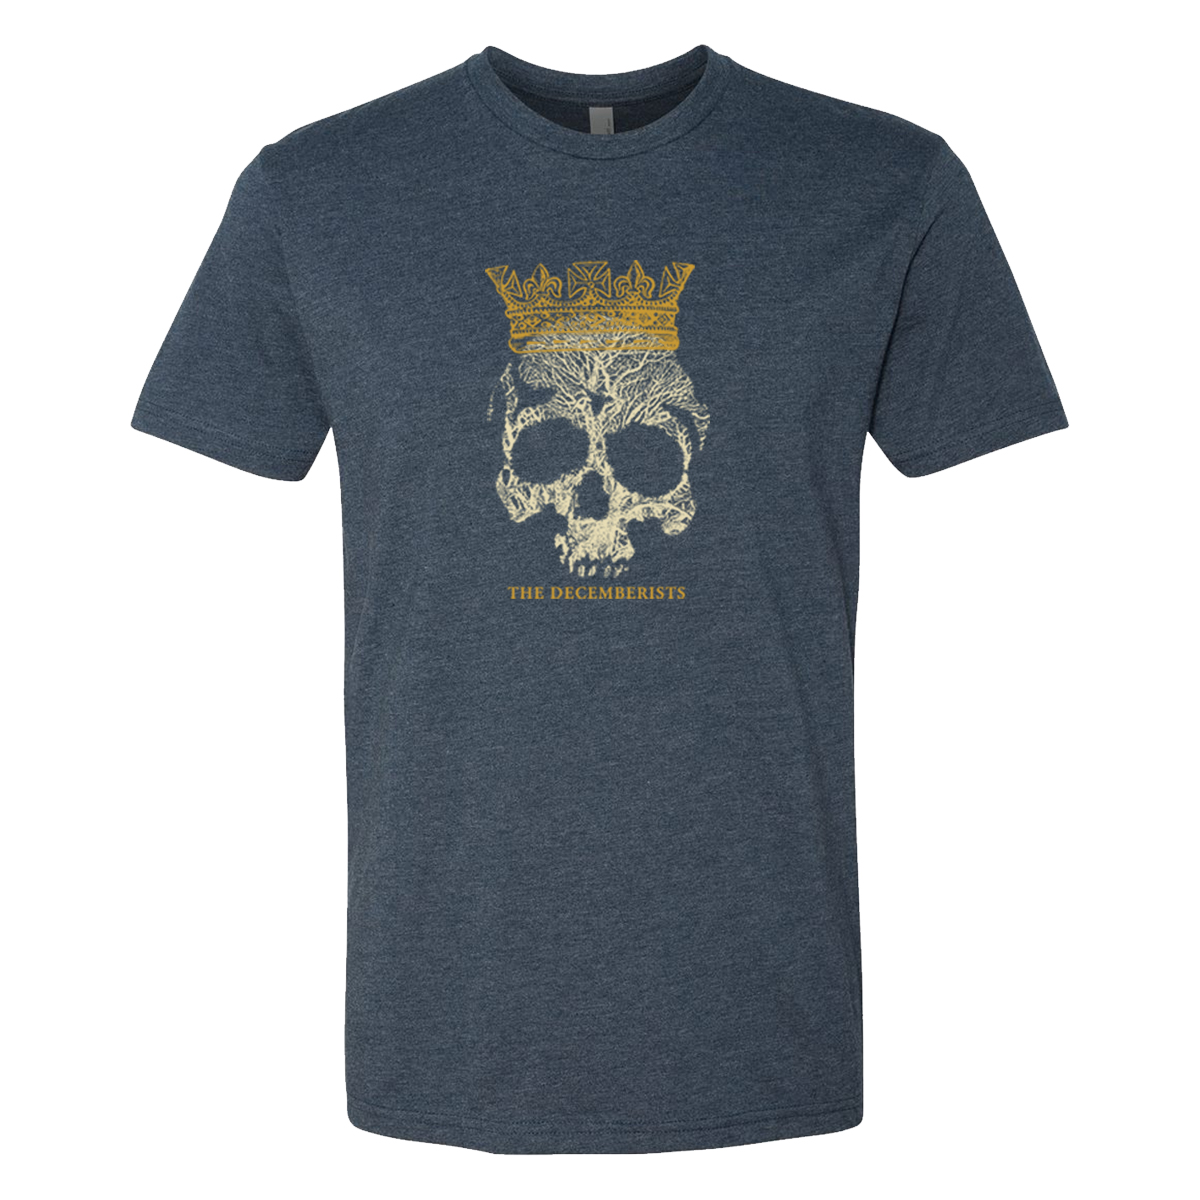 Hazards of Love Skull T-shirt